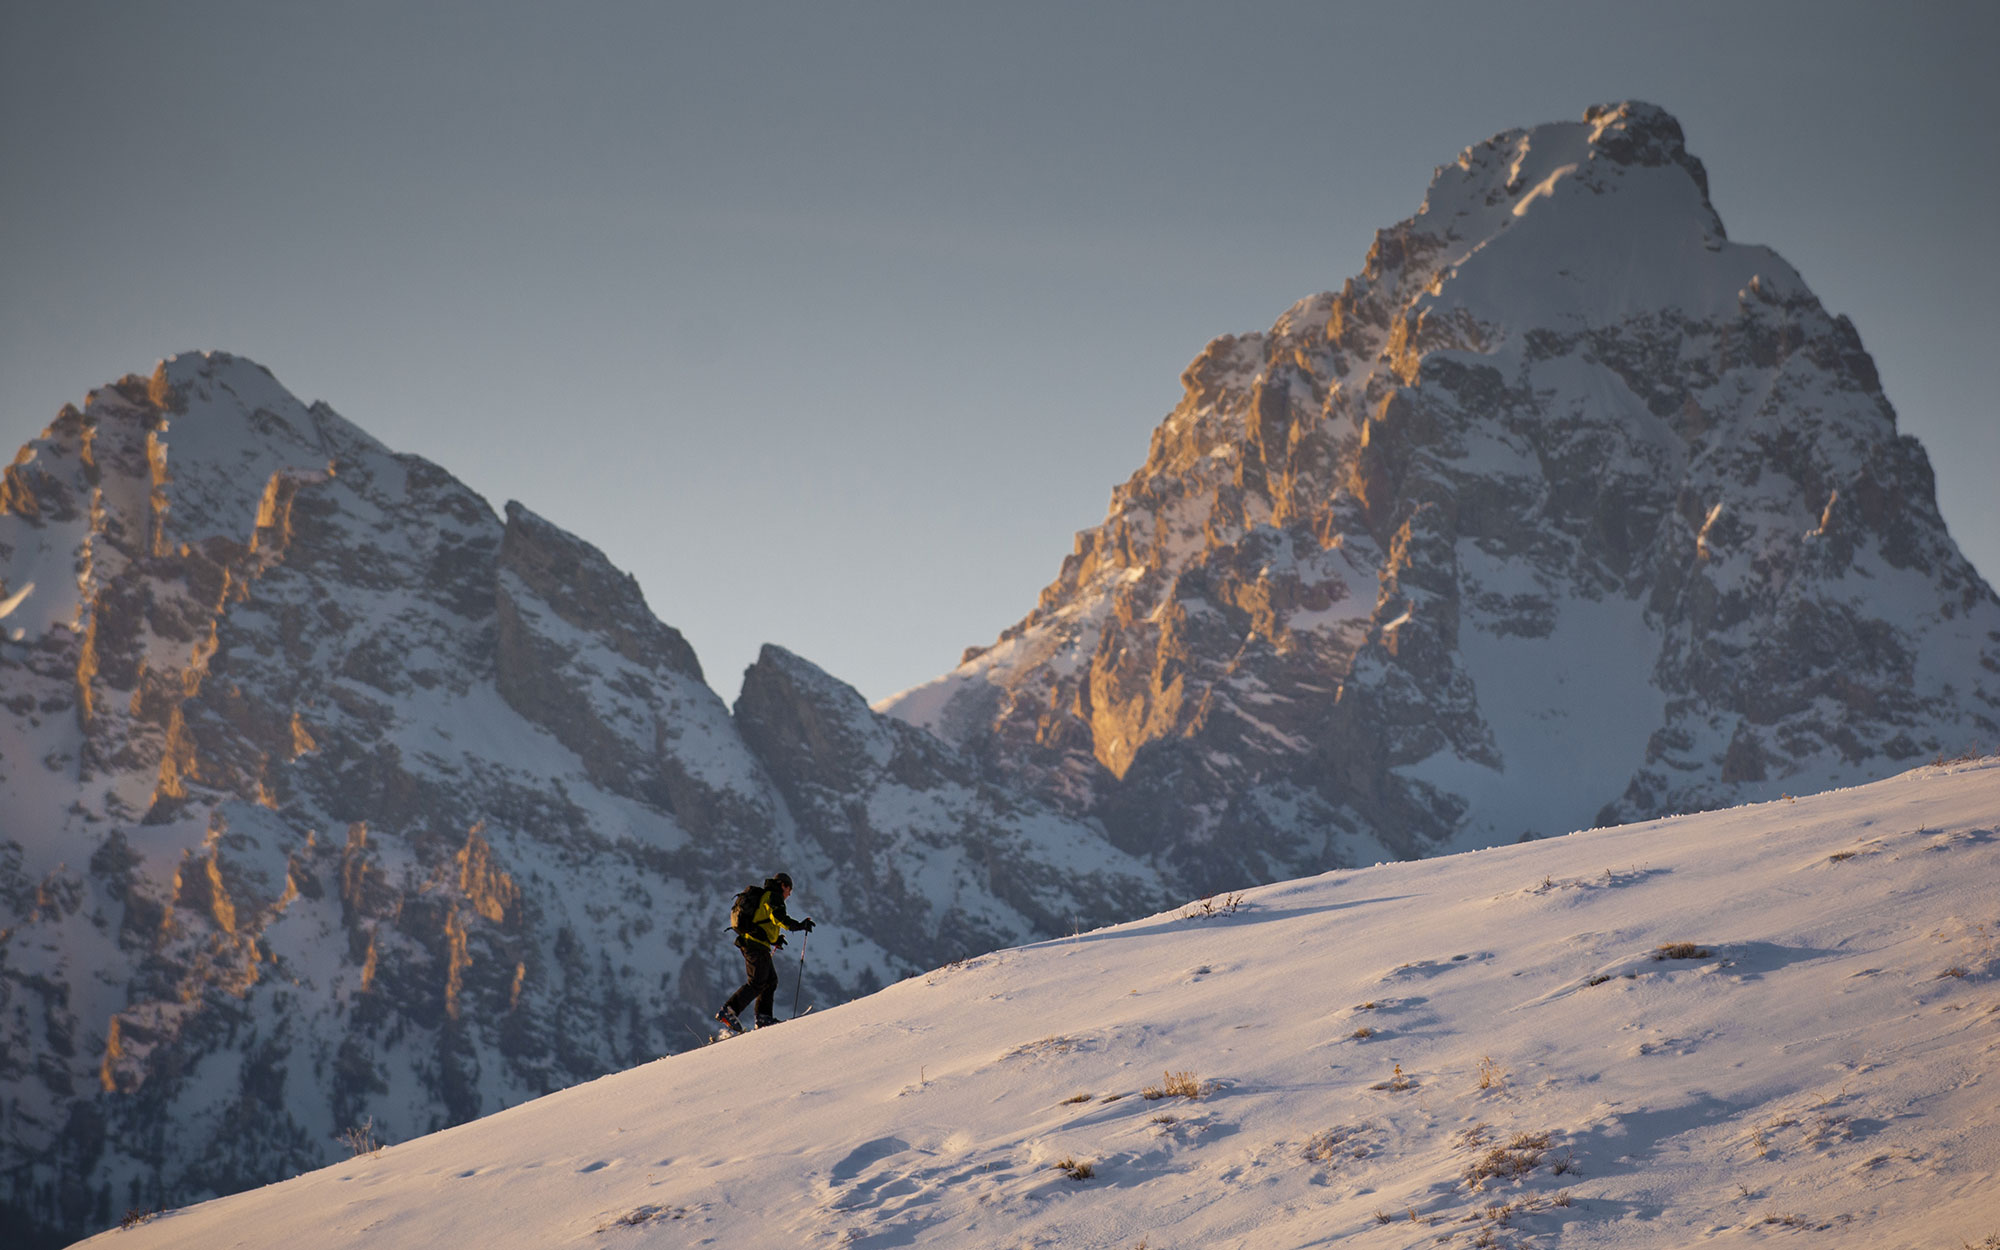 A young man climbs a hillside while backcountry skiing in Grand Teton National Park, Jackson Hole, Wyoming.